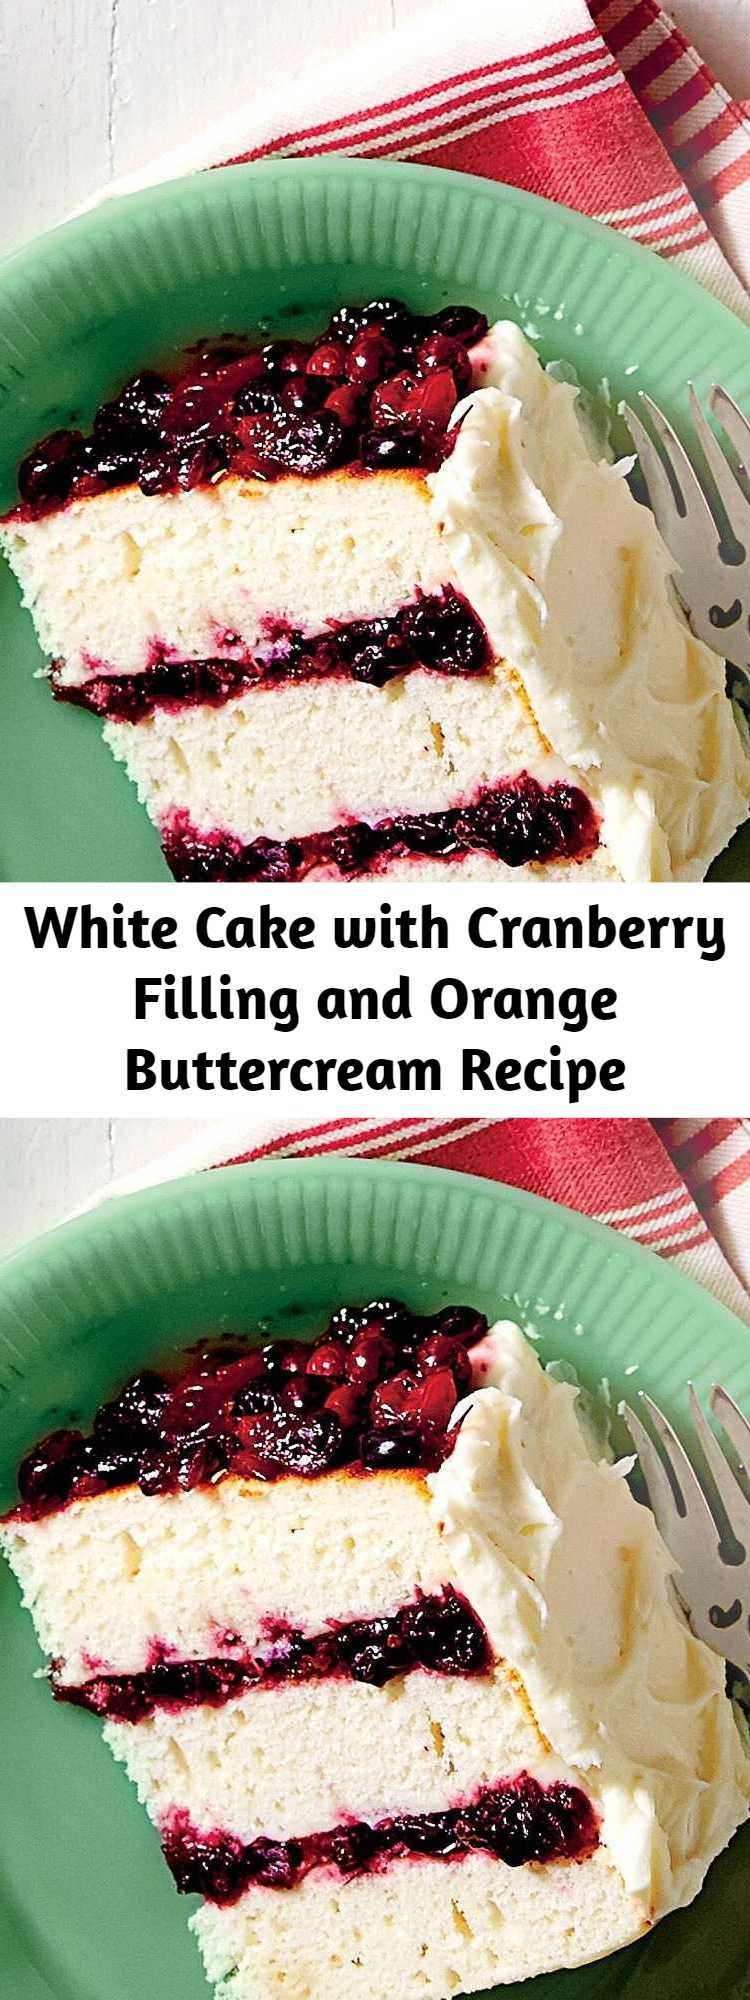 White Cake with Cranberry Filling and Orange Buttercream Recipe - This melt-in-your-mouth cake will be the star of your holiday meal. Your guests will be begging for the recipe!